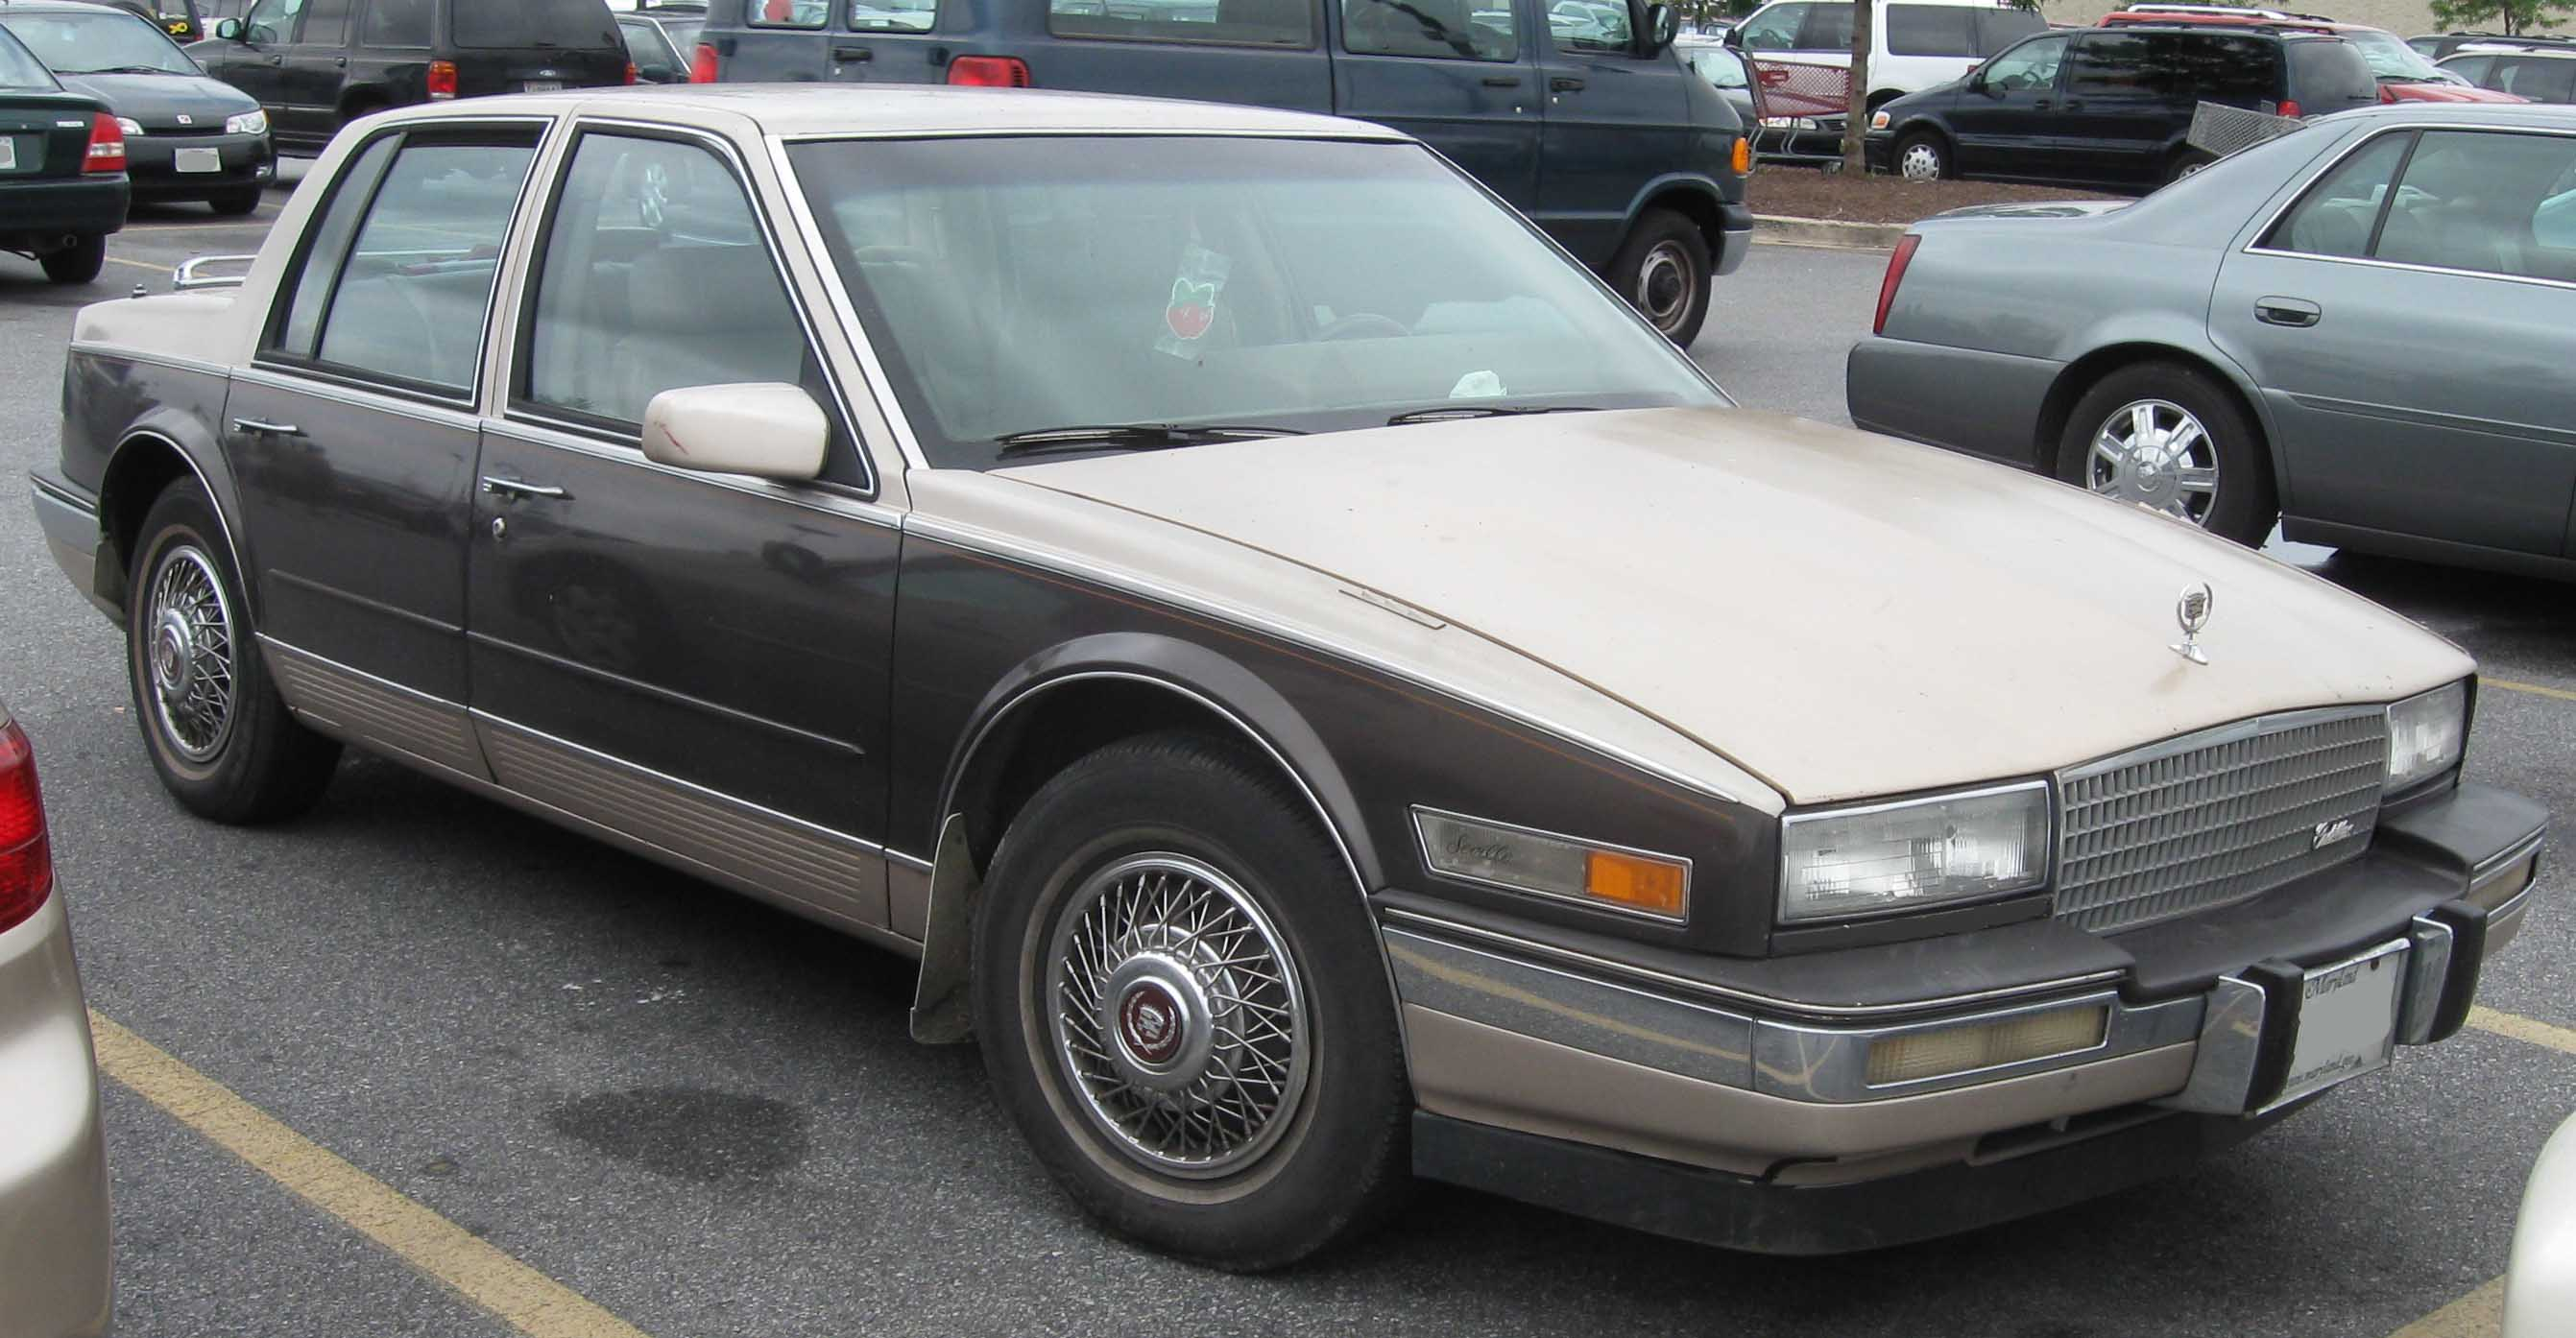 File:86-88 Cadillac Seville.jpg - Wikimedia Commons